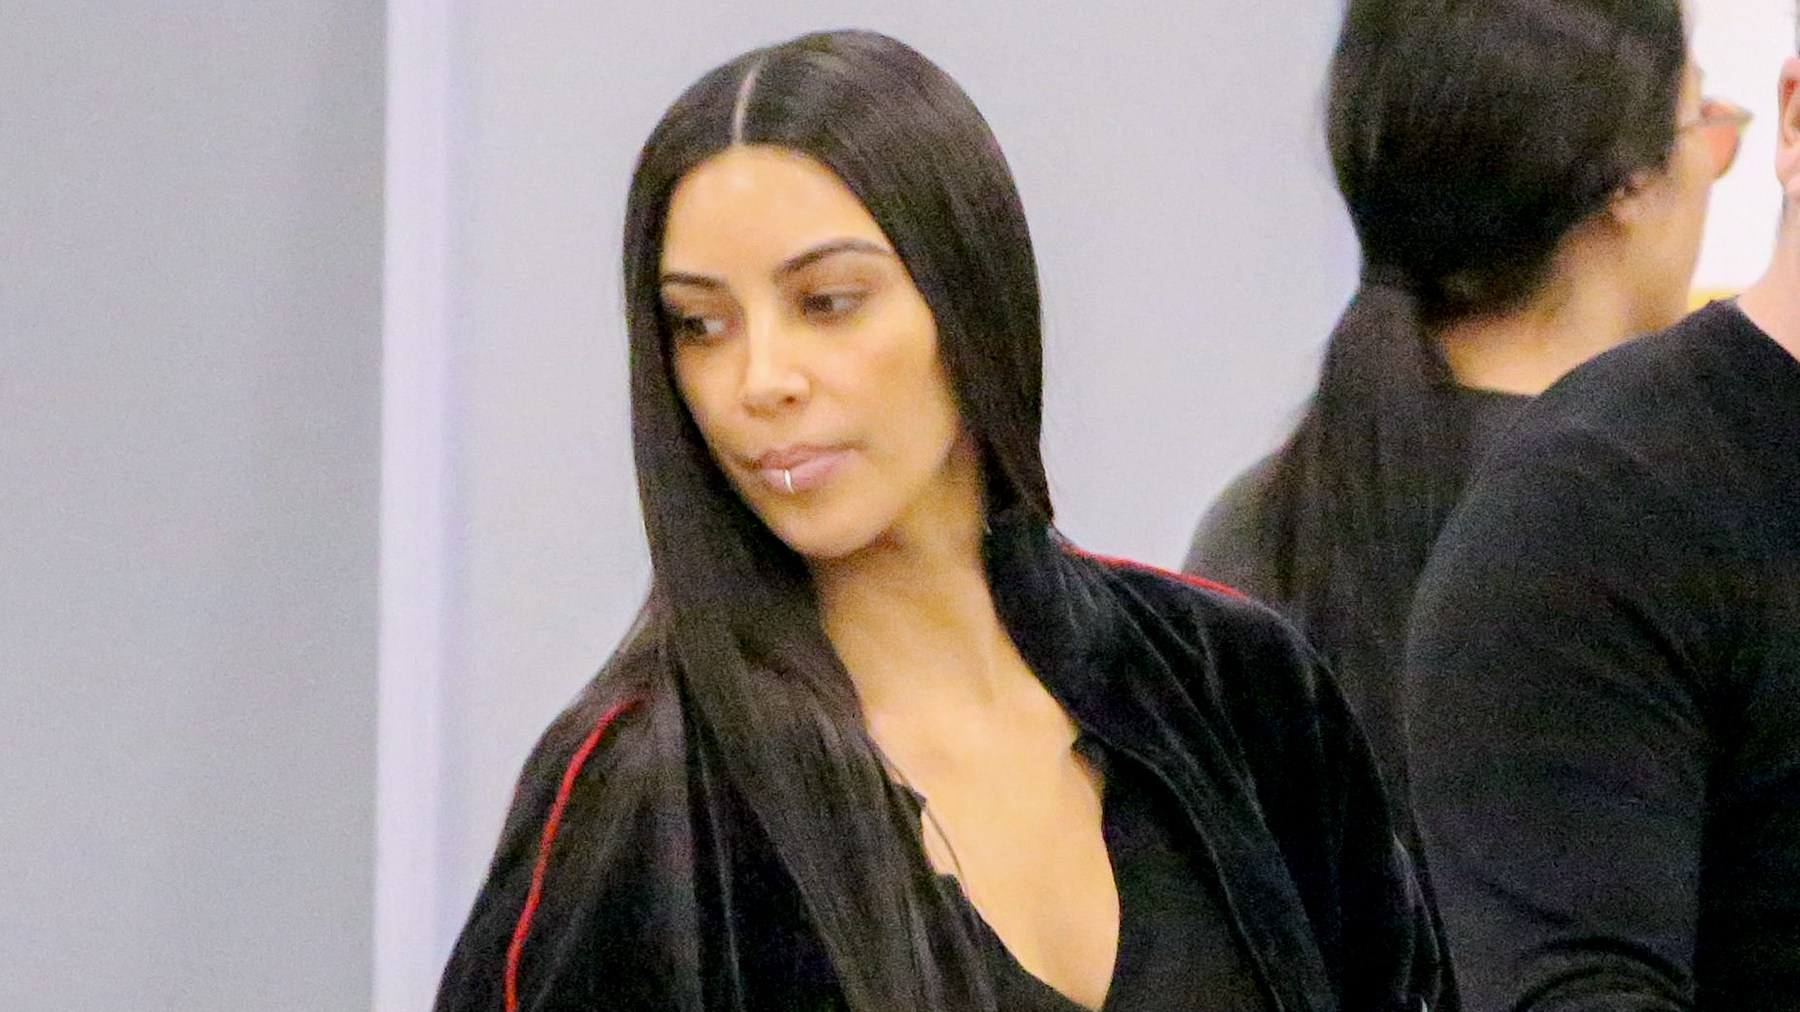 Kim Kardashian catches a flight out of LAX with Scott Disick headed to Dubai January 11, 2017. Juliano/X17online.com